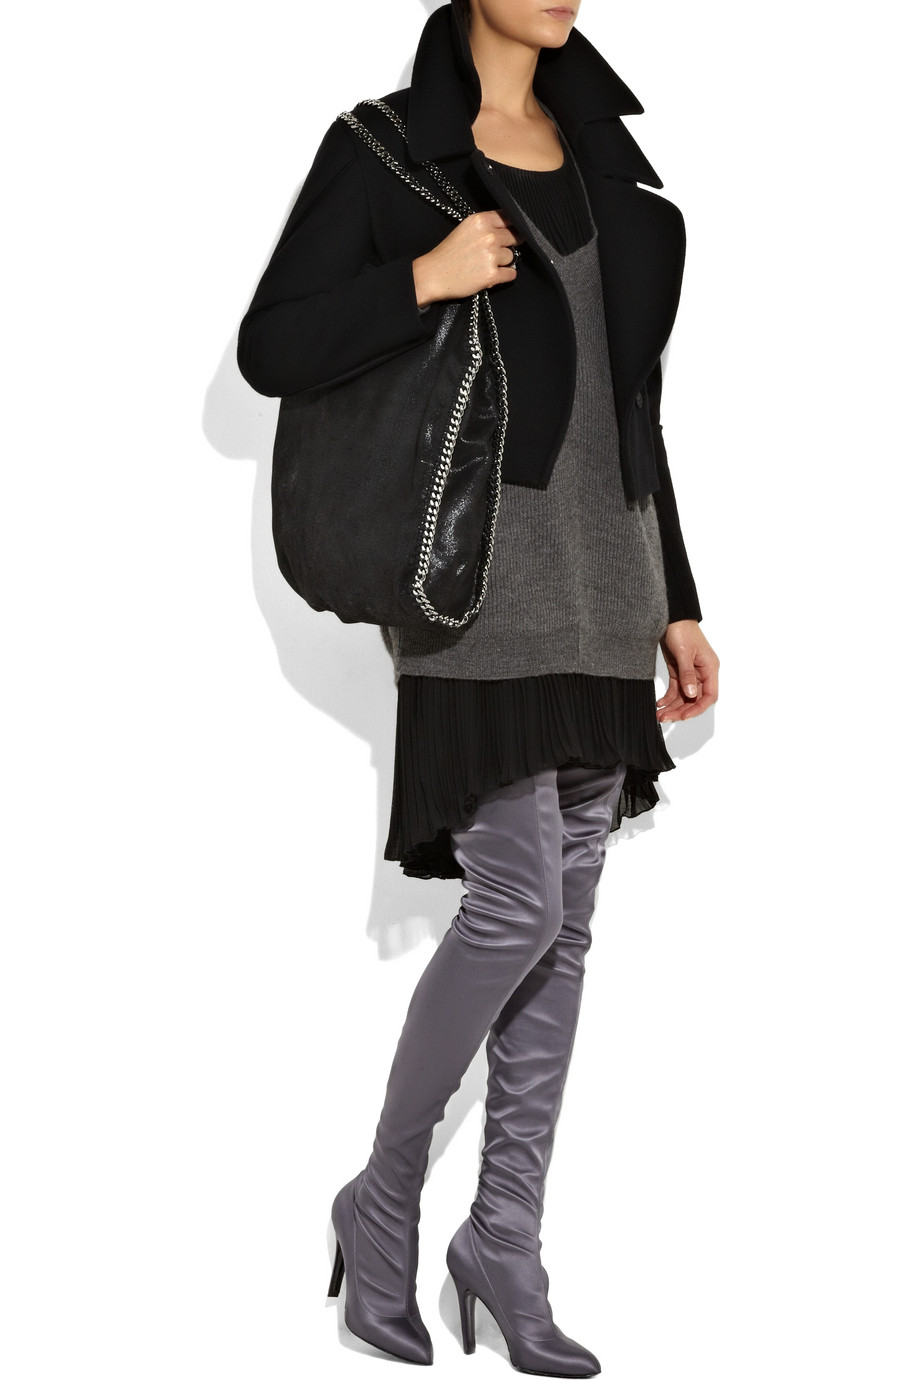 cost genuine sale online Stella McCartney Satin Thigh-High Boots store online free shipping newest PCY9Z